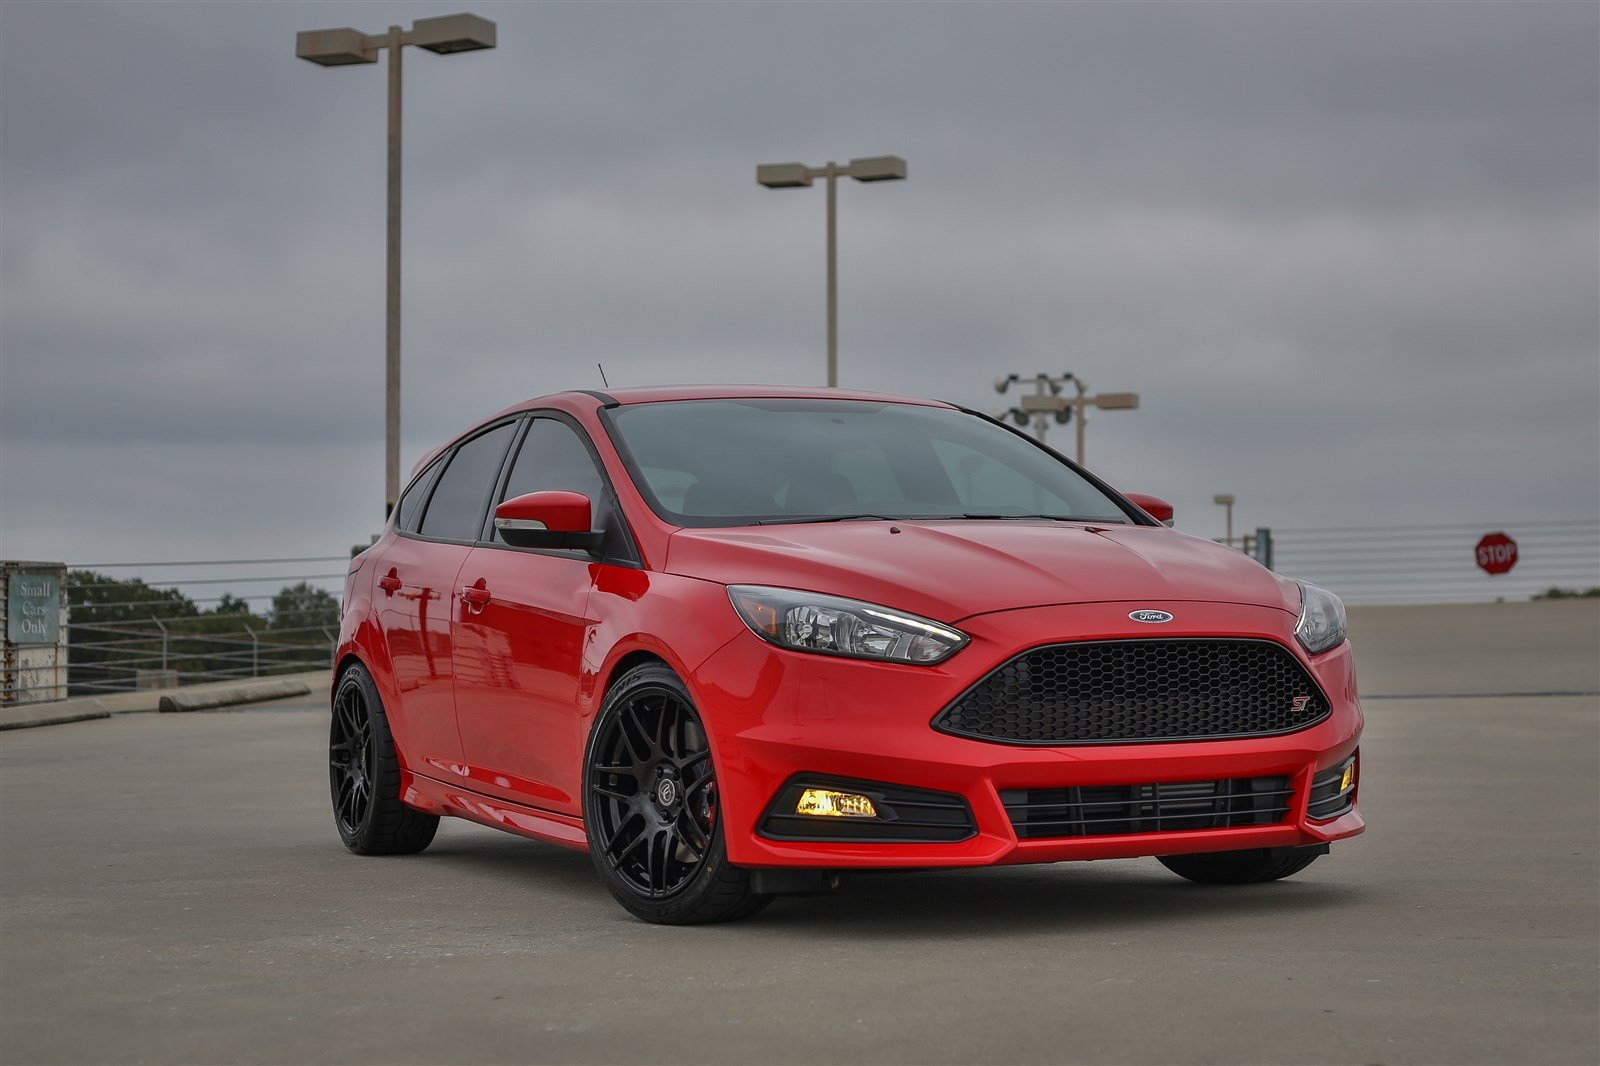 here home new new 2016 ford focus new 2016 ford focus st fwd hatchback. Black Bedroom Furniture Sets. Home Design Ideas